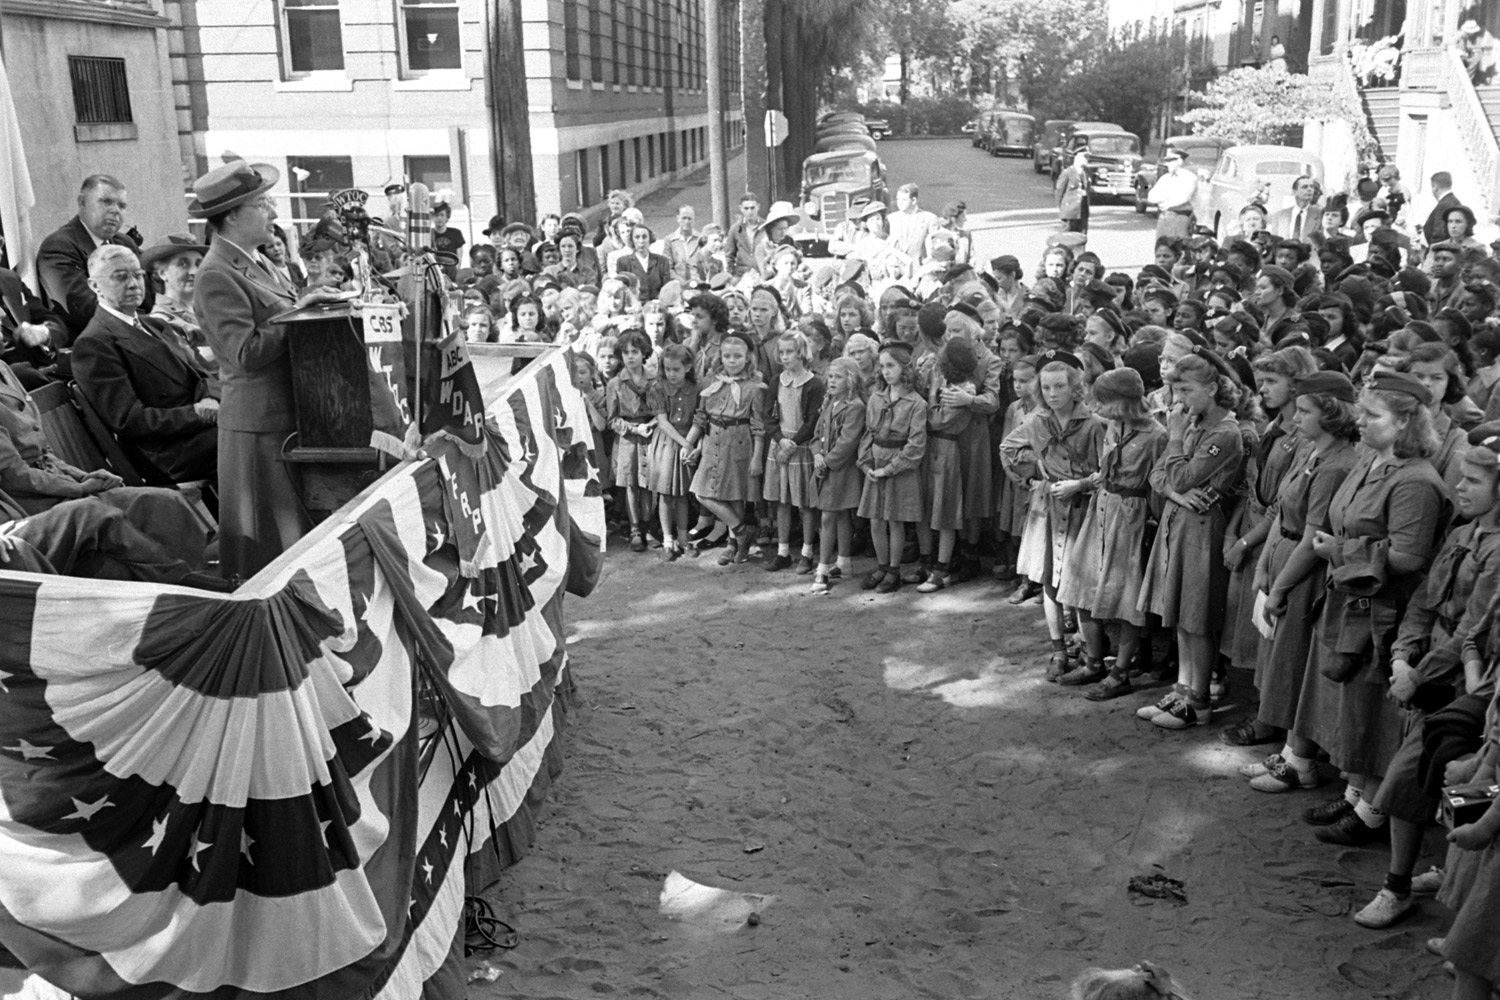 Daisy Gordon Lawrence addresses a crowd in Savannah, Georgia, during a celebration honoring her aunt, Juliette Low, founder of the Girl Scouts of America.